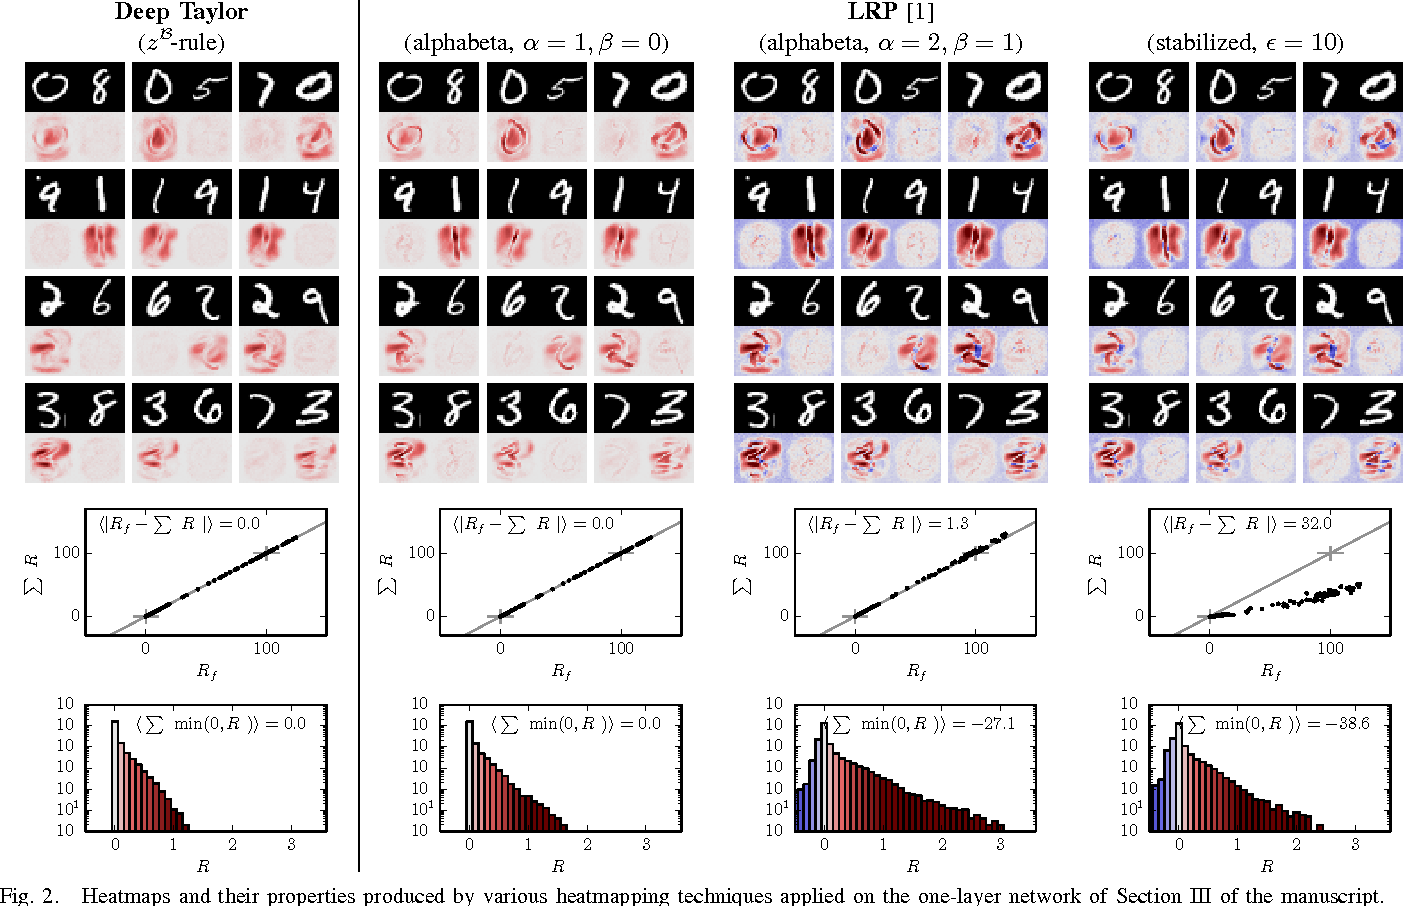 Figure 3 for Explaining NonLinear Classification Decisions with Deep Taylor Decomposition